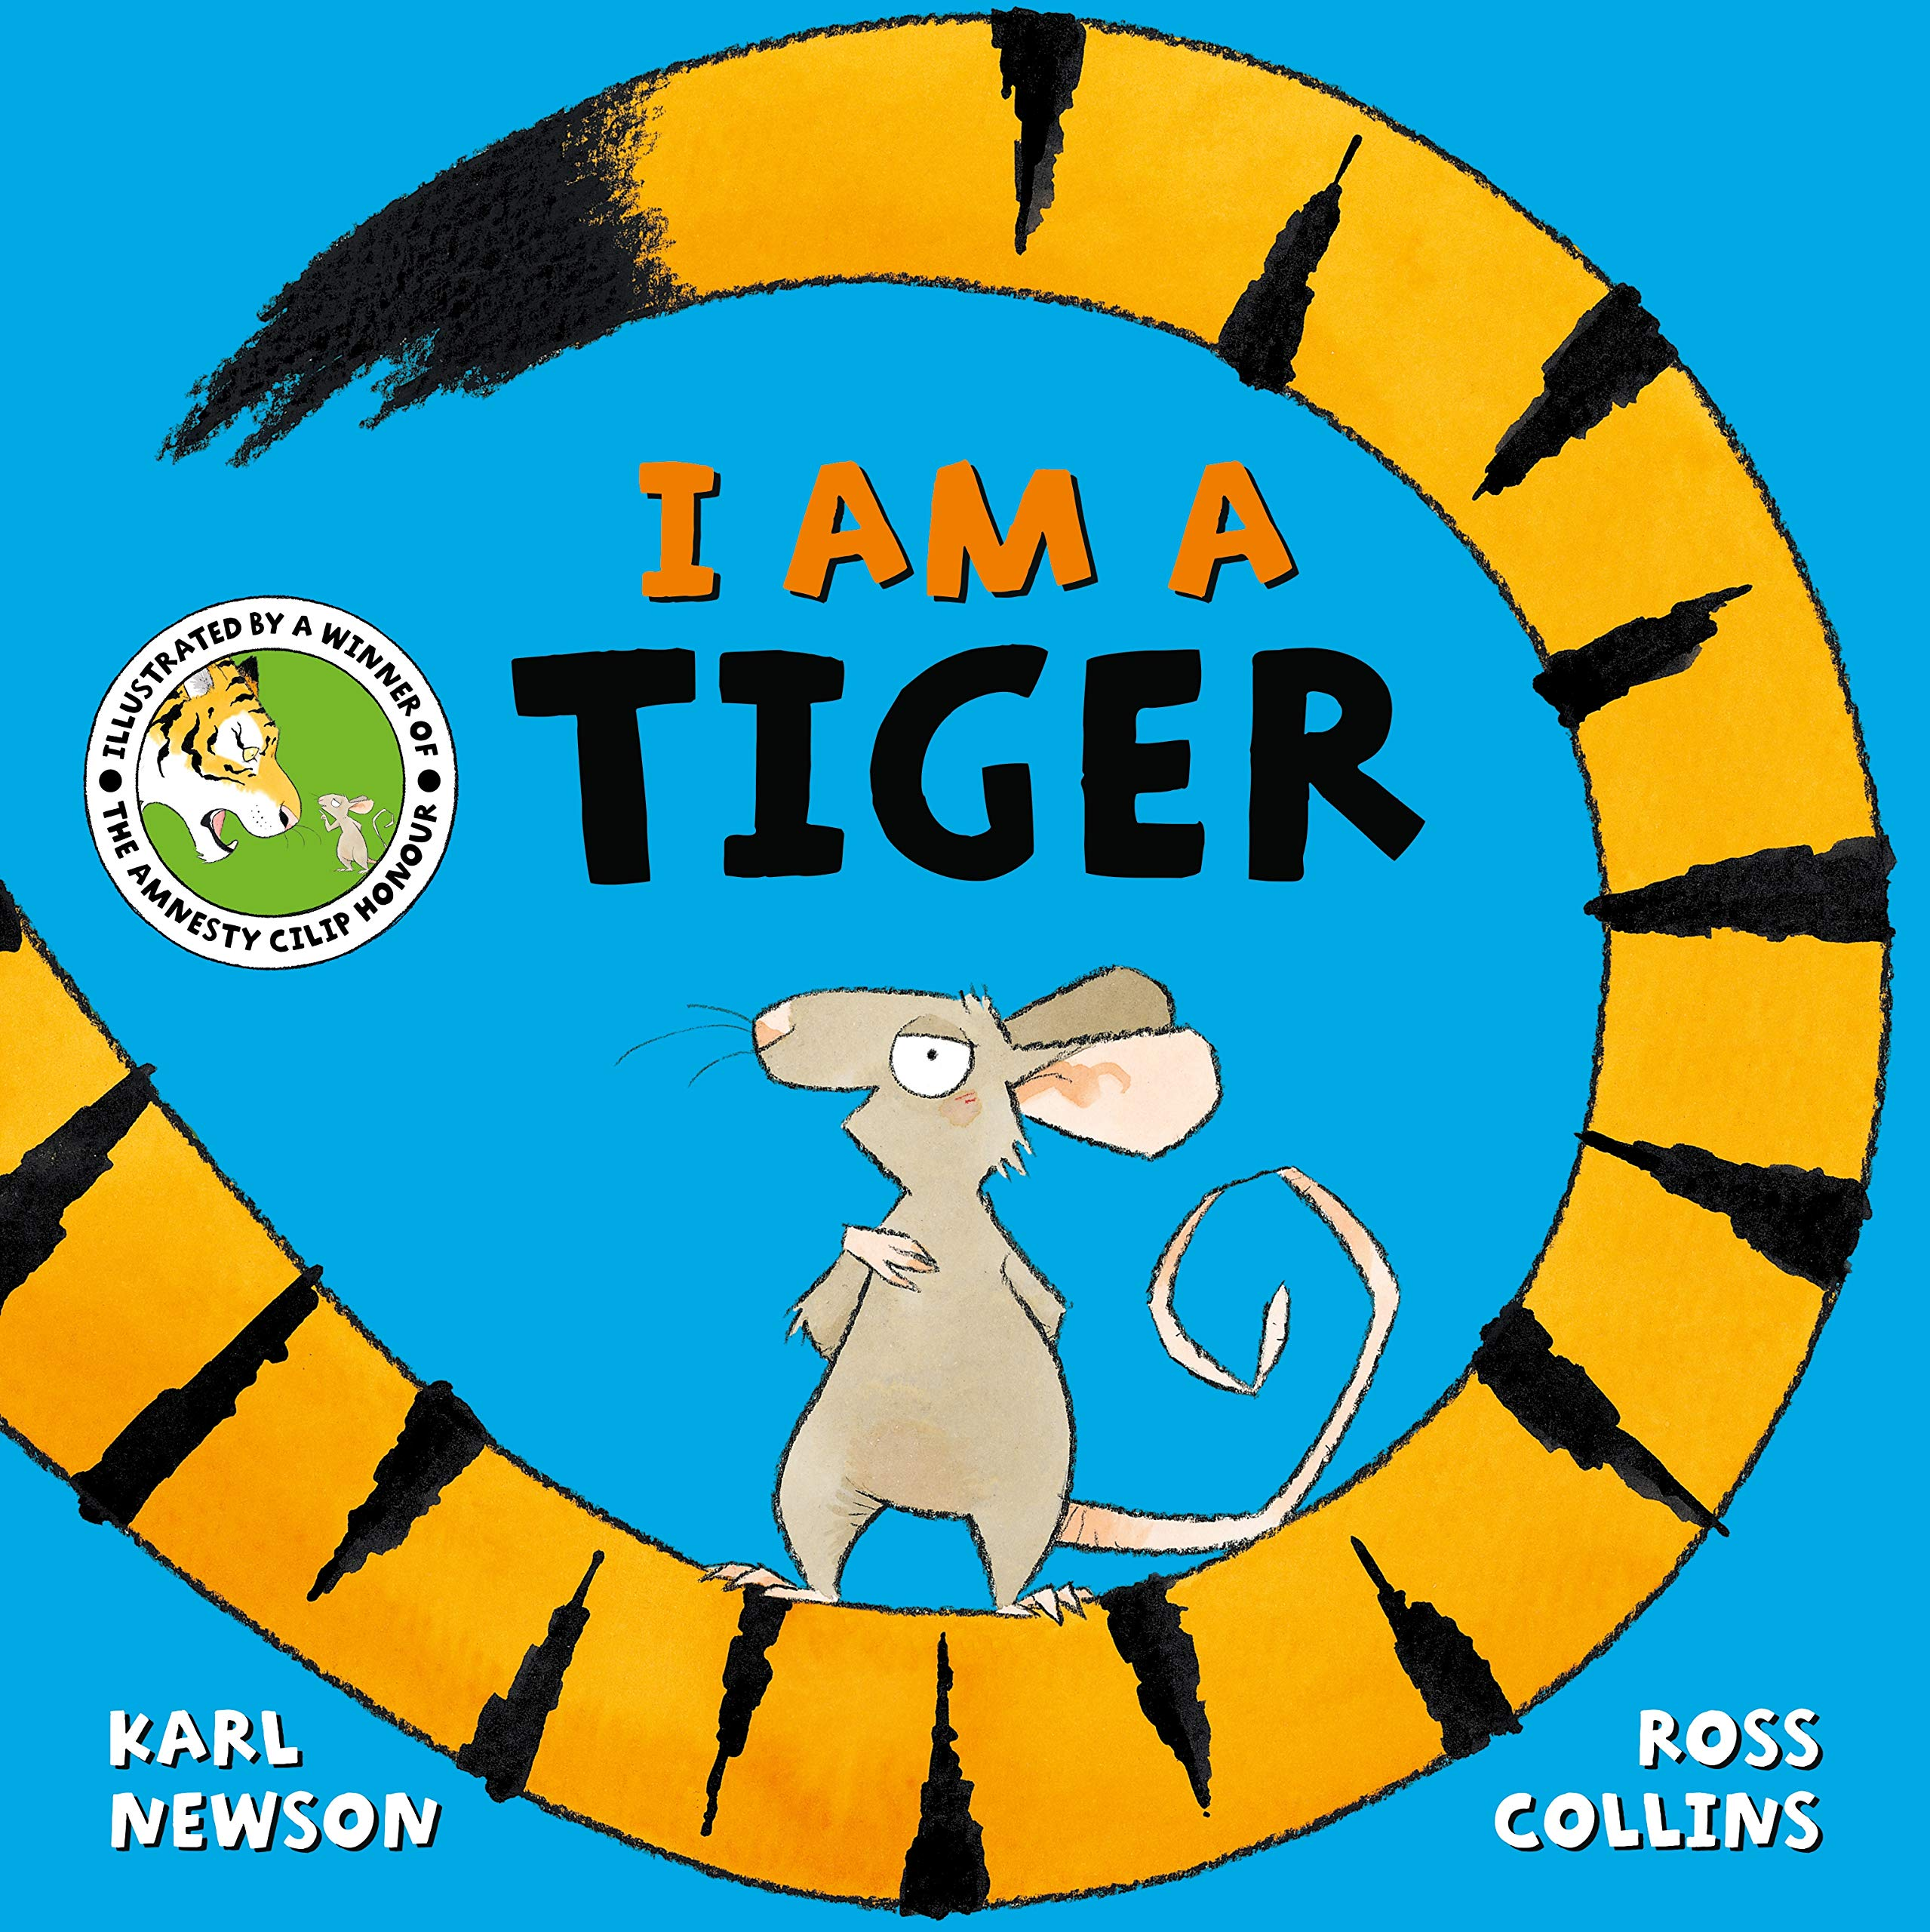 I am a Tiger: Amazon.co.uk: Karl Newson, Ross Collins: Books